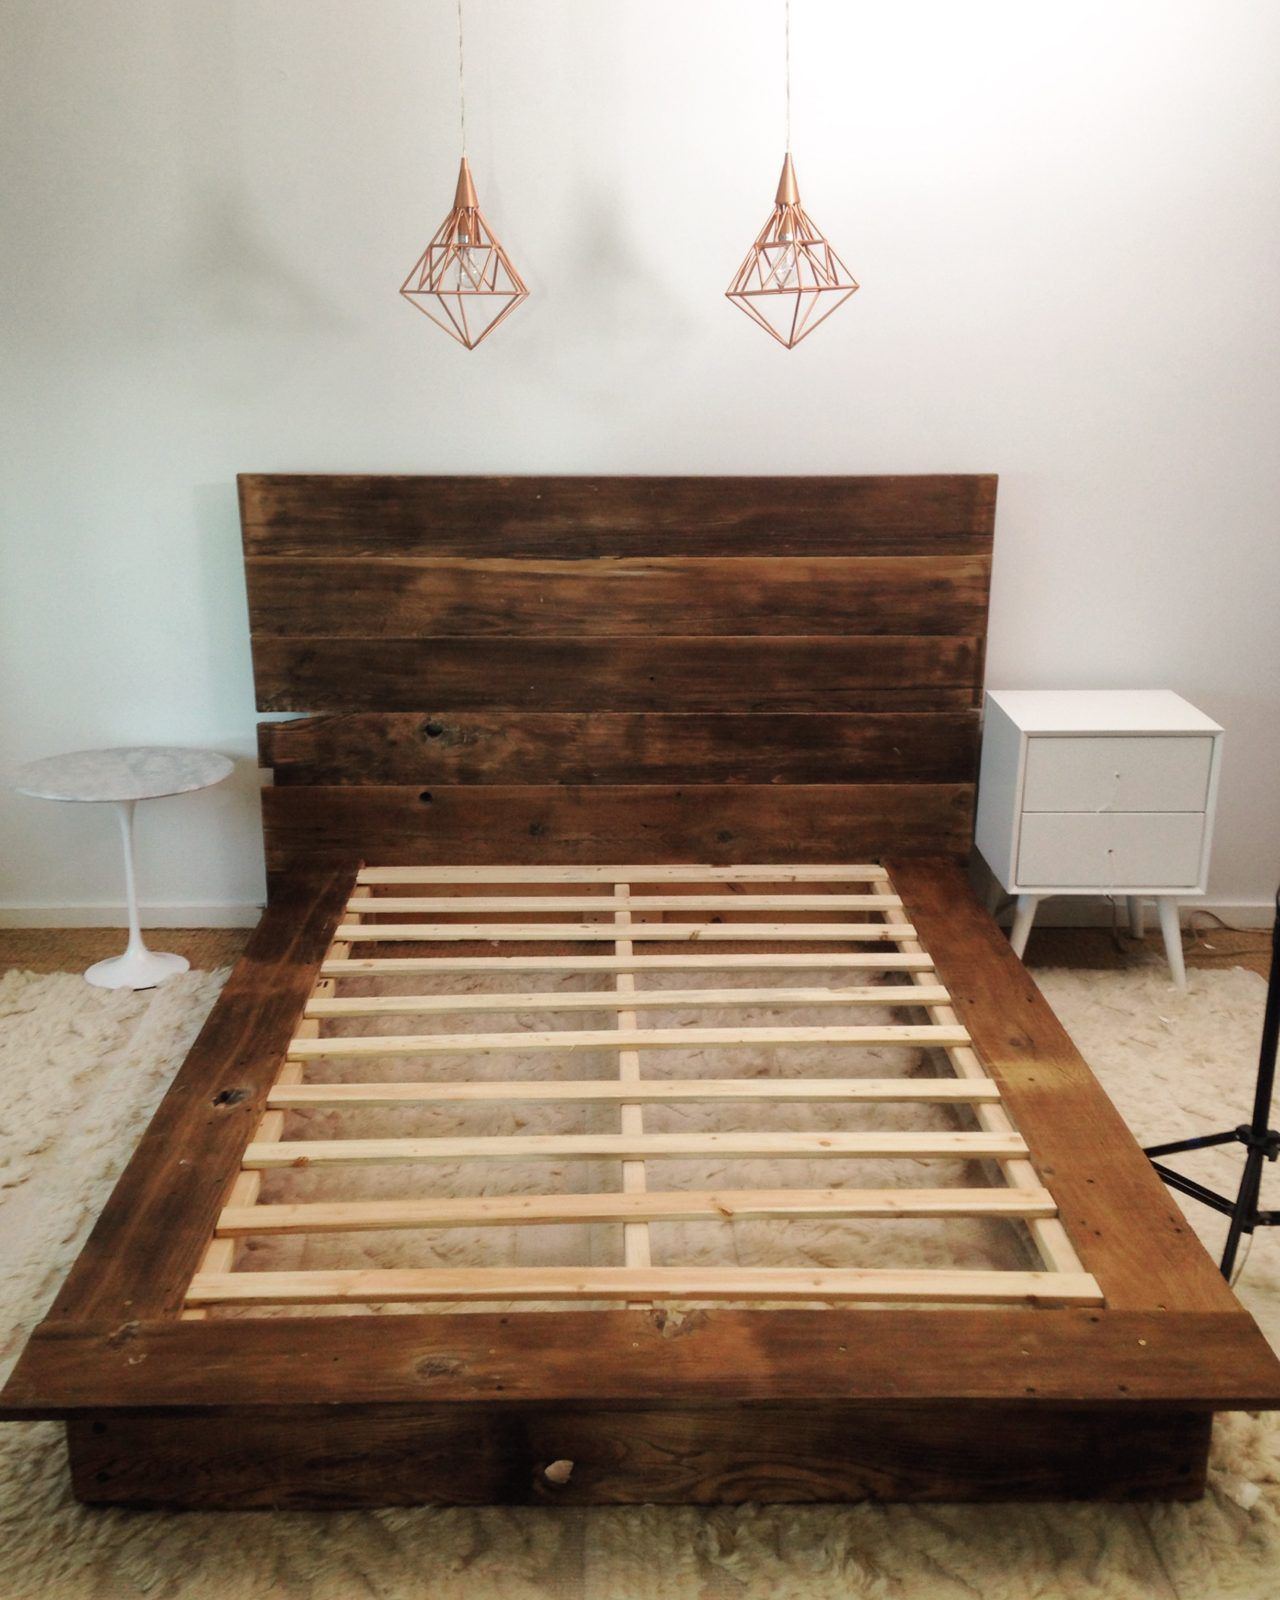 Best ideas about DIY Platform Bed Frame Queen . Save or Pin DIY Reclaimed Wood Platform Bed in 2019 Home Now.